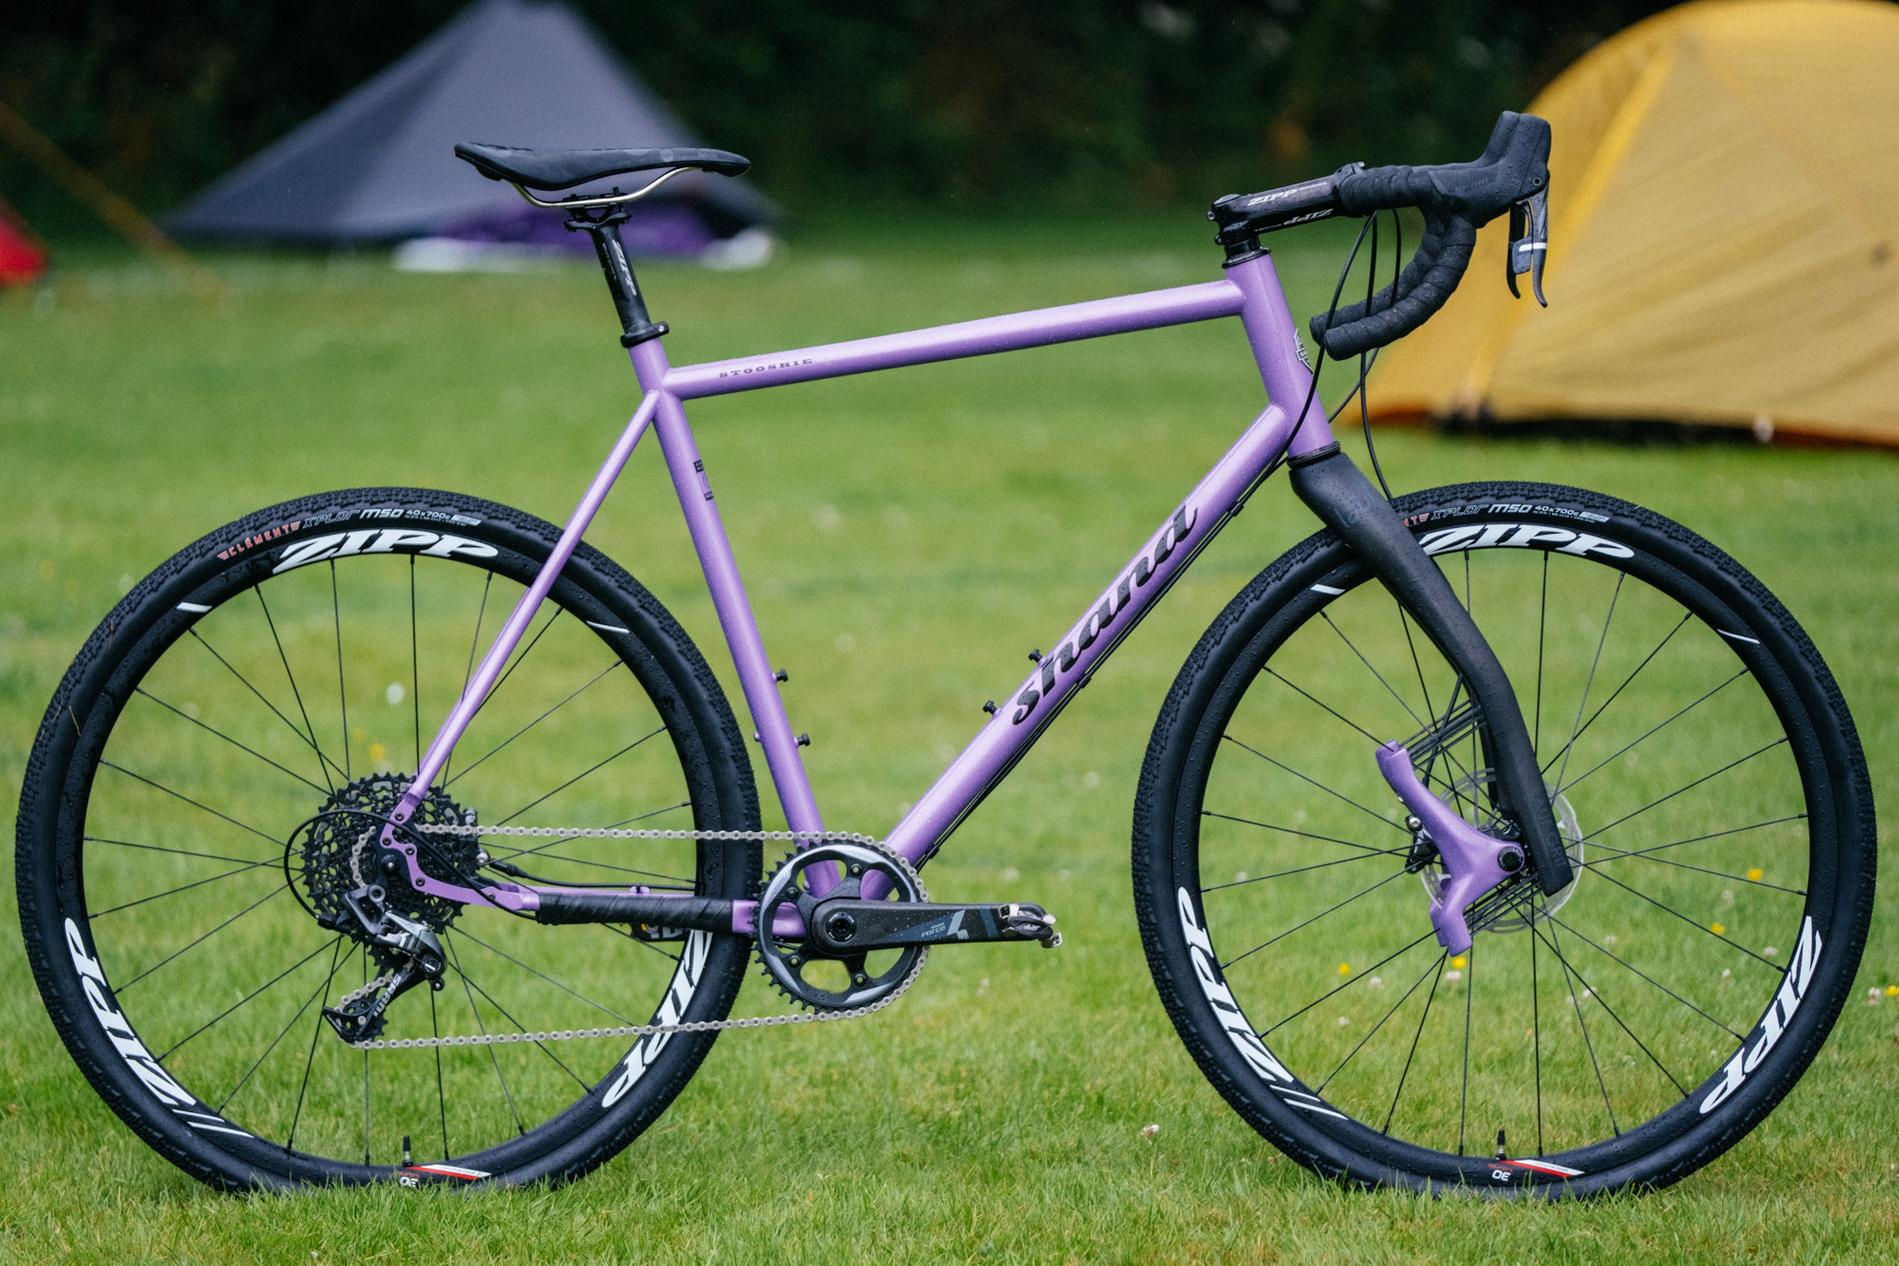 Shand Cycles